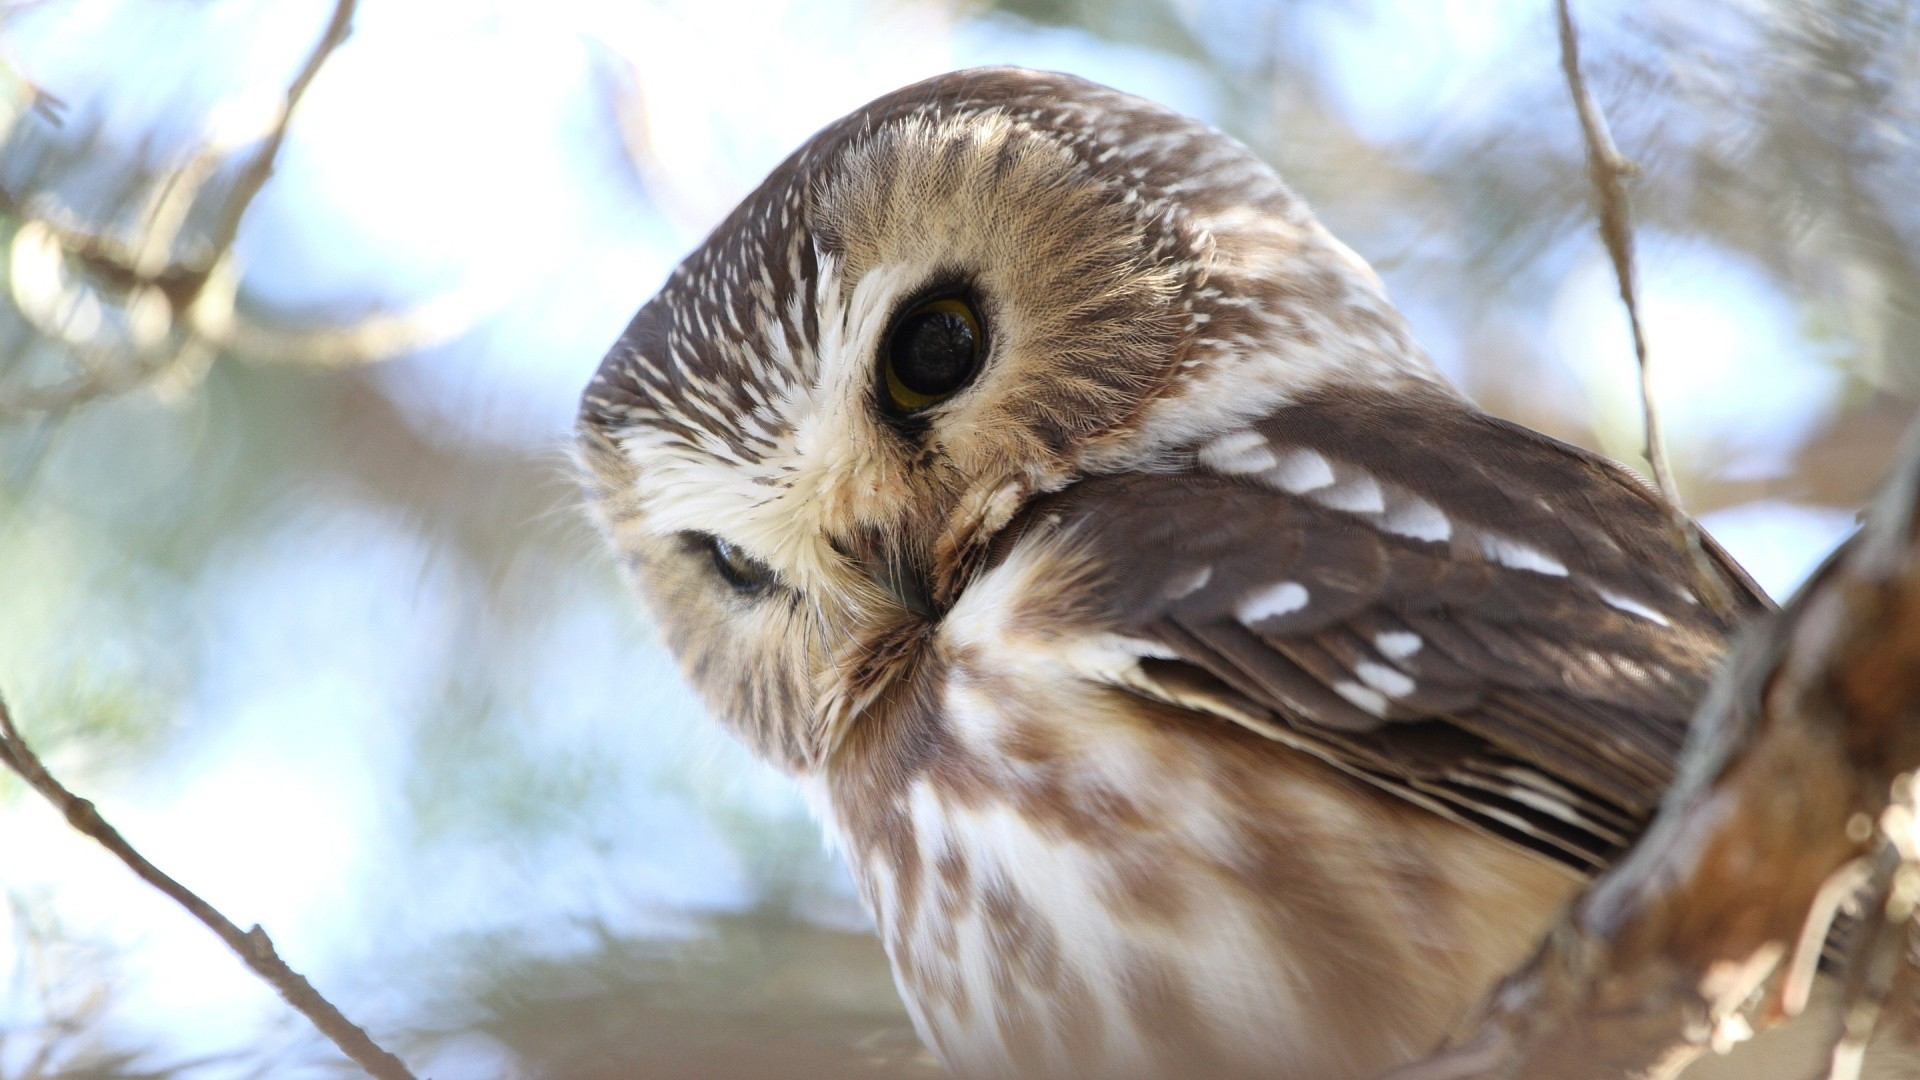 Res: 1920x1080, Cute Owl Picture Free Download.